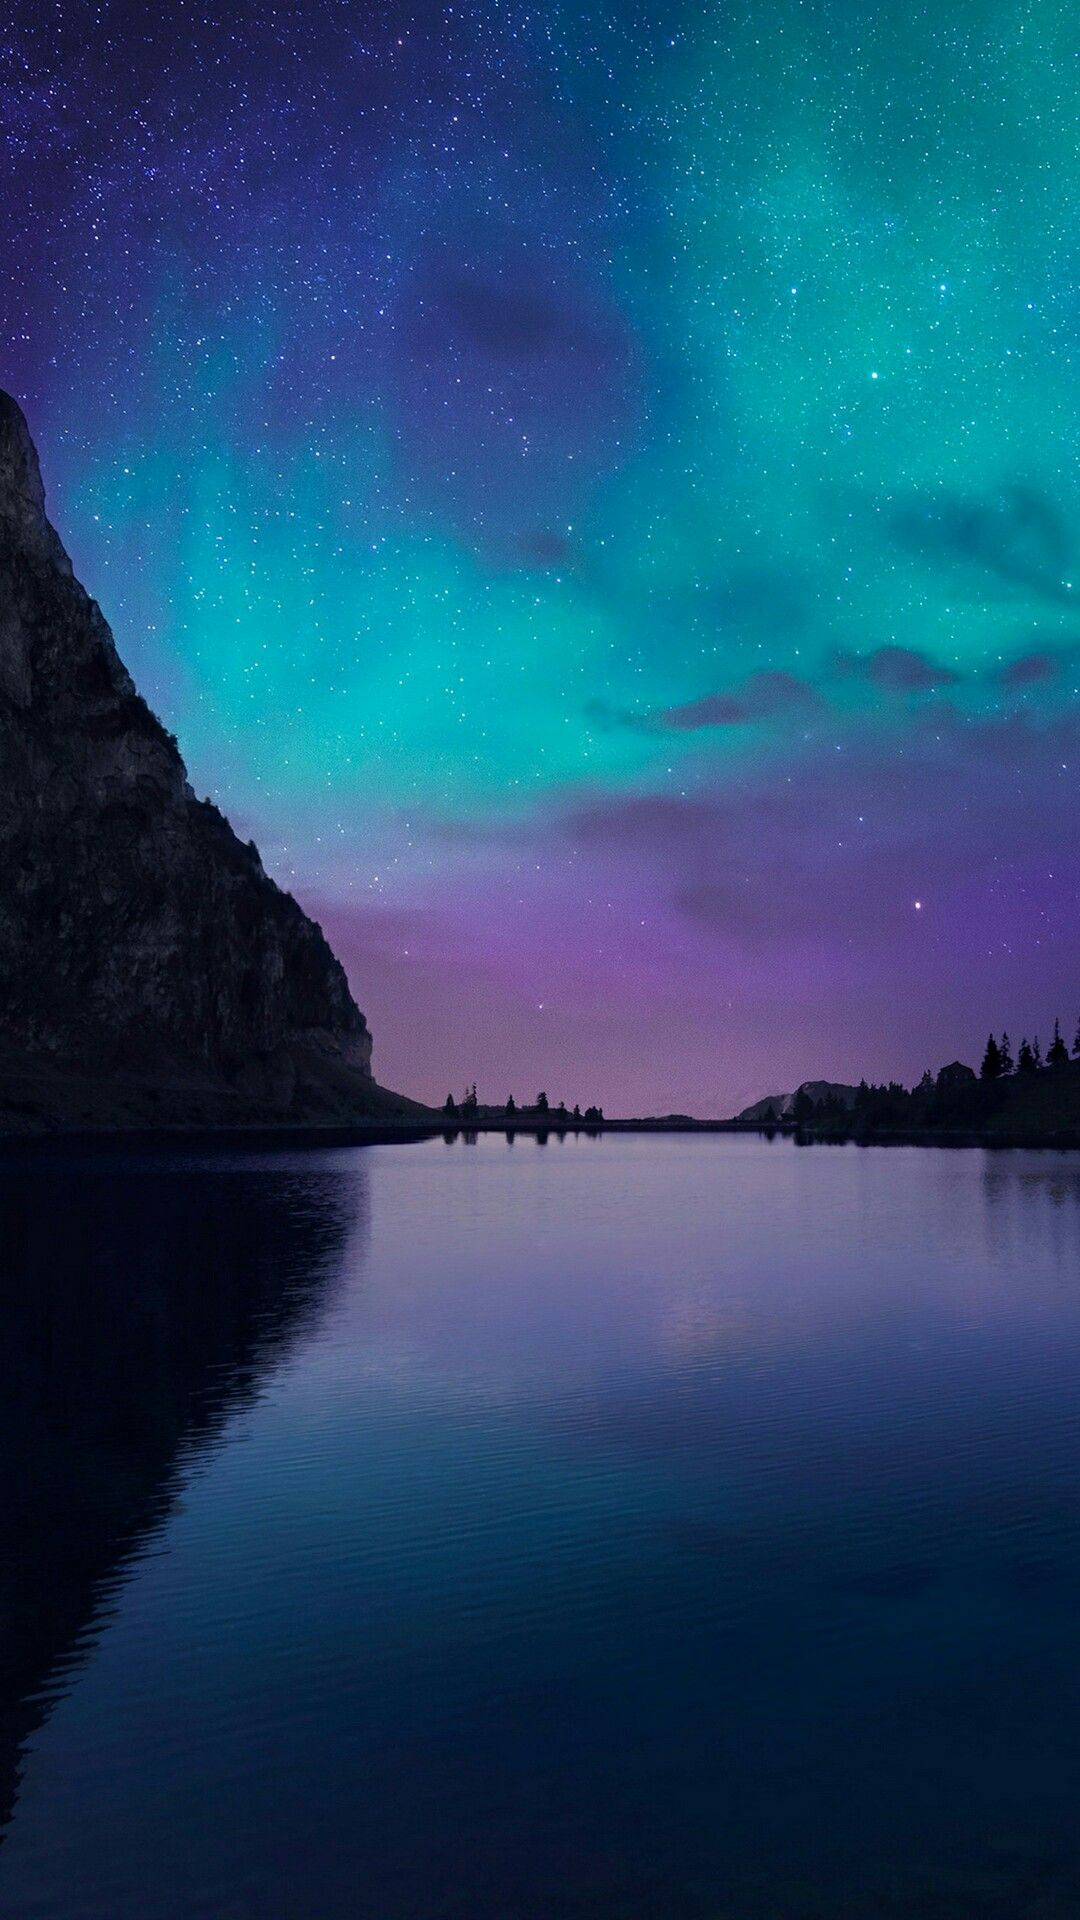 Wallpaper for Android and iPhone Landscape wallpaper